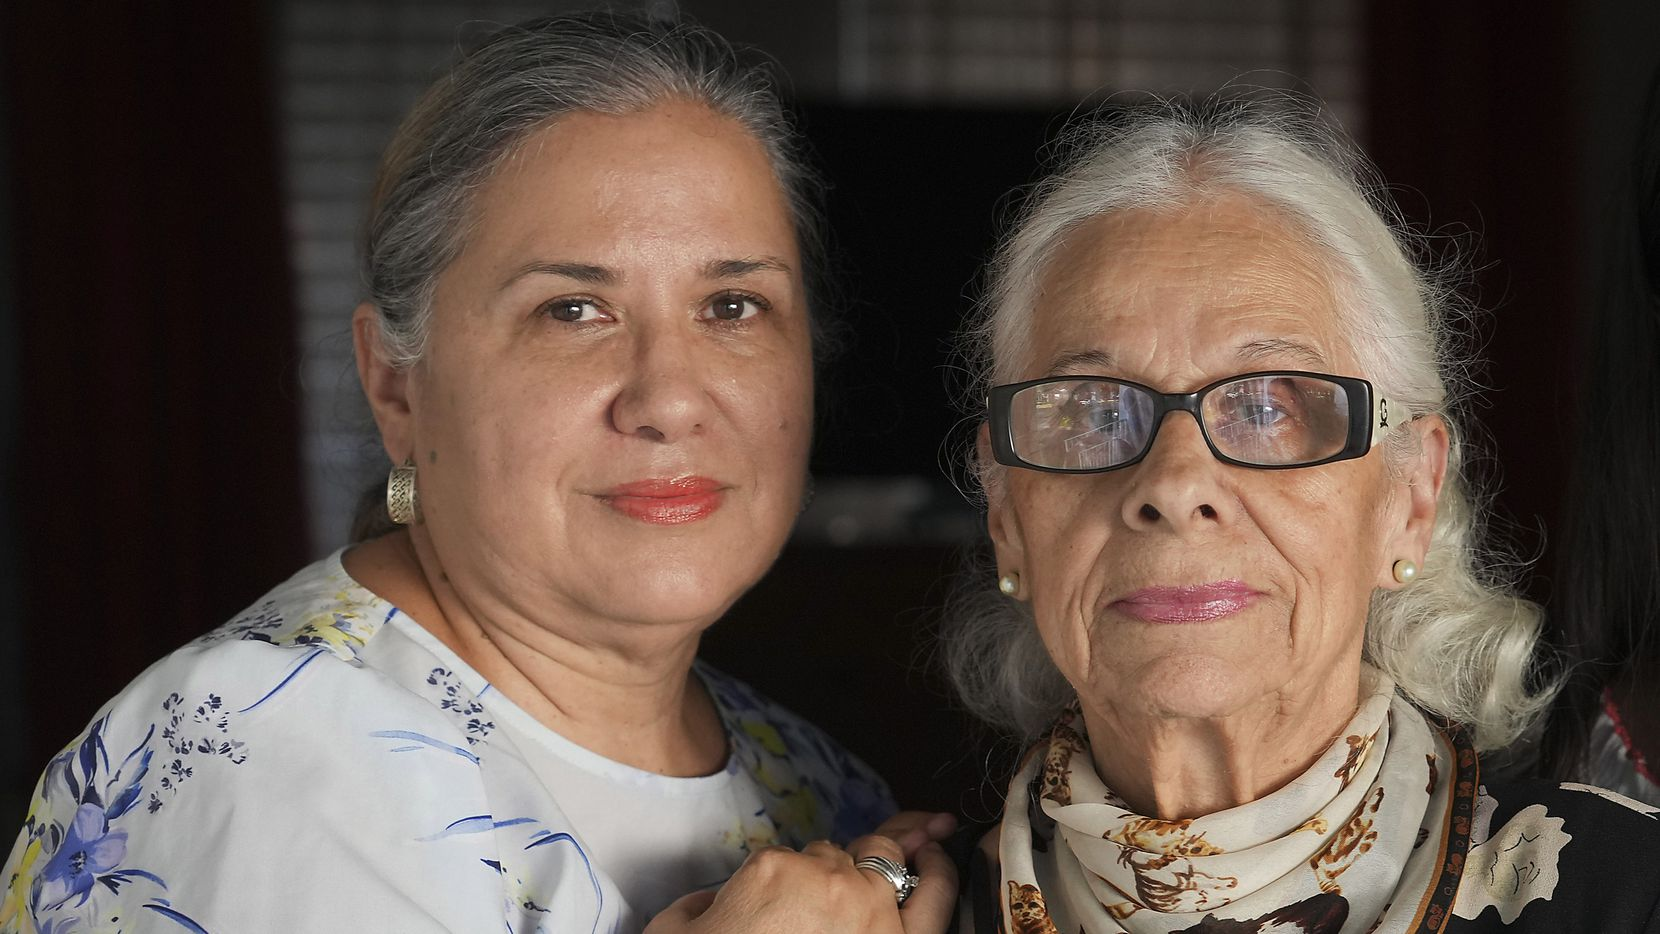 Alejandra Vila, 57, photographed with her mother Olga Umana, 89, on Thursday, July 15, 2021, in Dallas. Alejandra Vila and Olga Umana were among the first to be vaccinated at Fair Park on the first day of Dallas County's Fair Park mega vaccine site. (Smiley N. Pool/The Dallas Morning News)